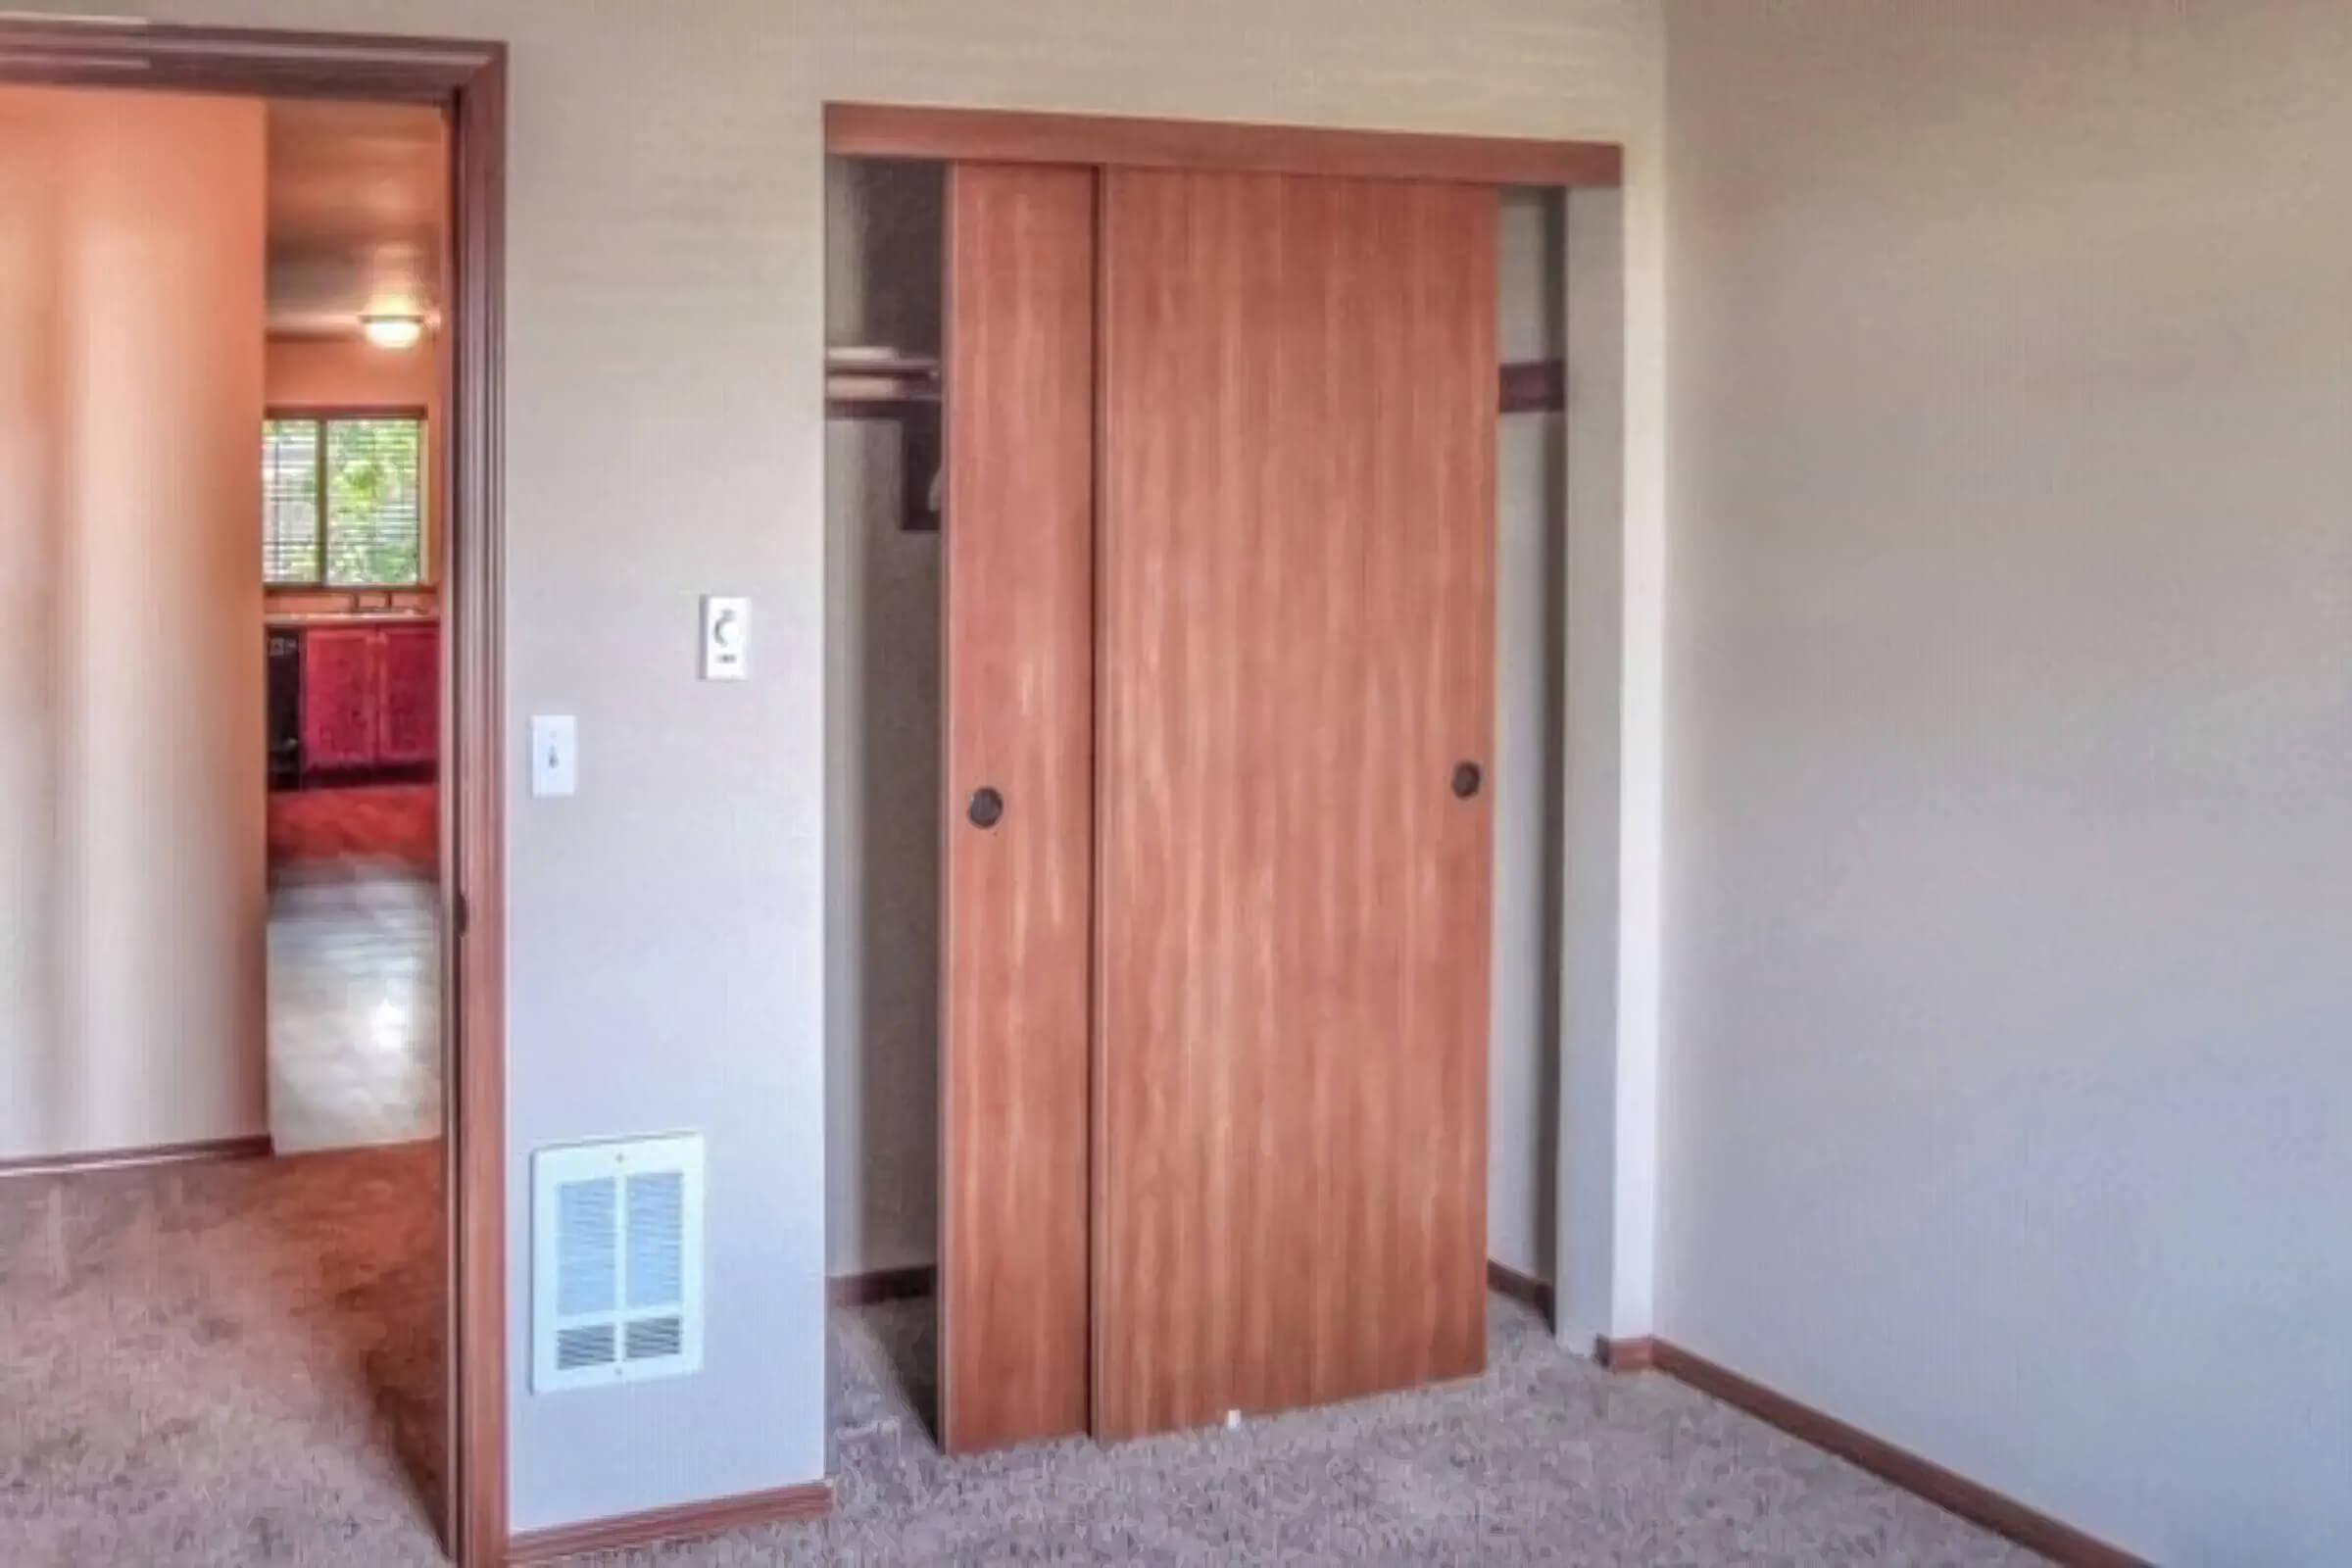 a wooden door in a room